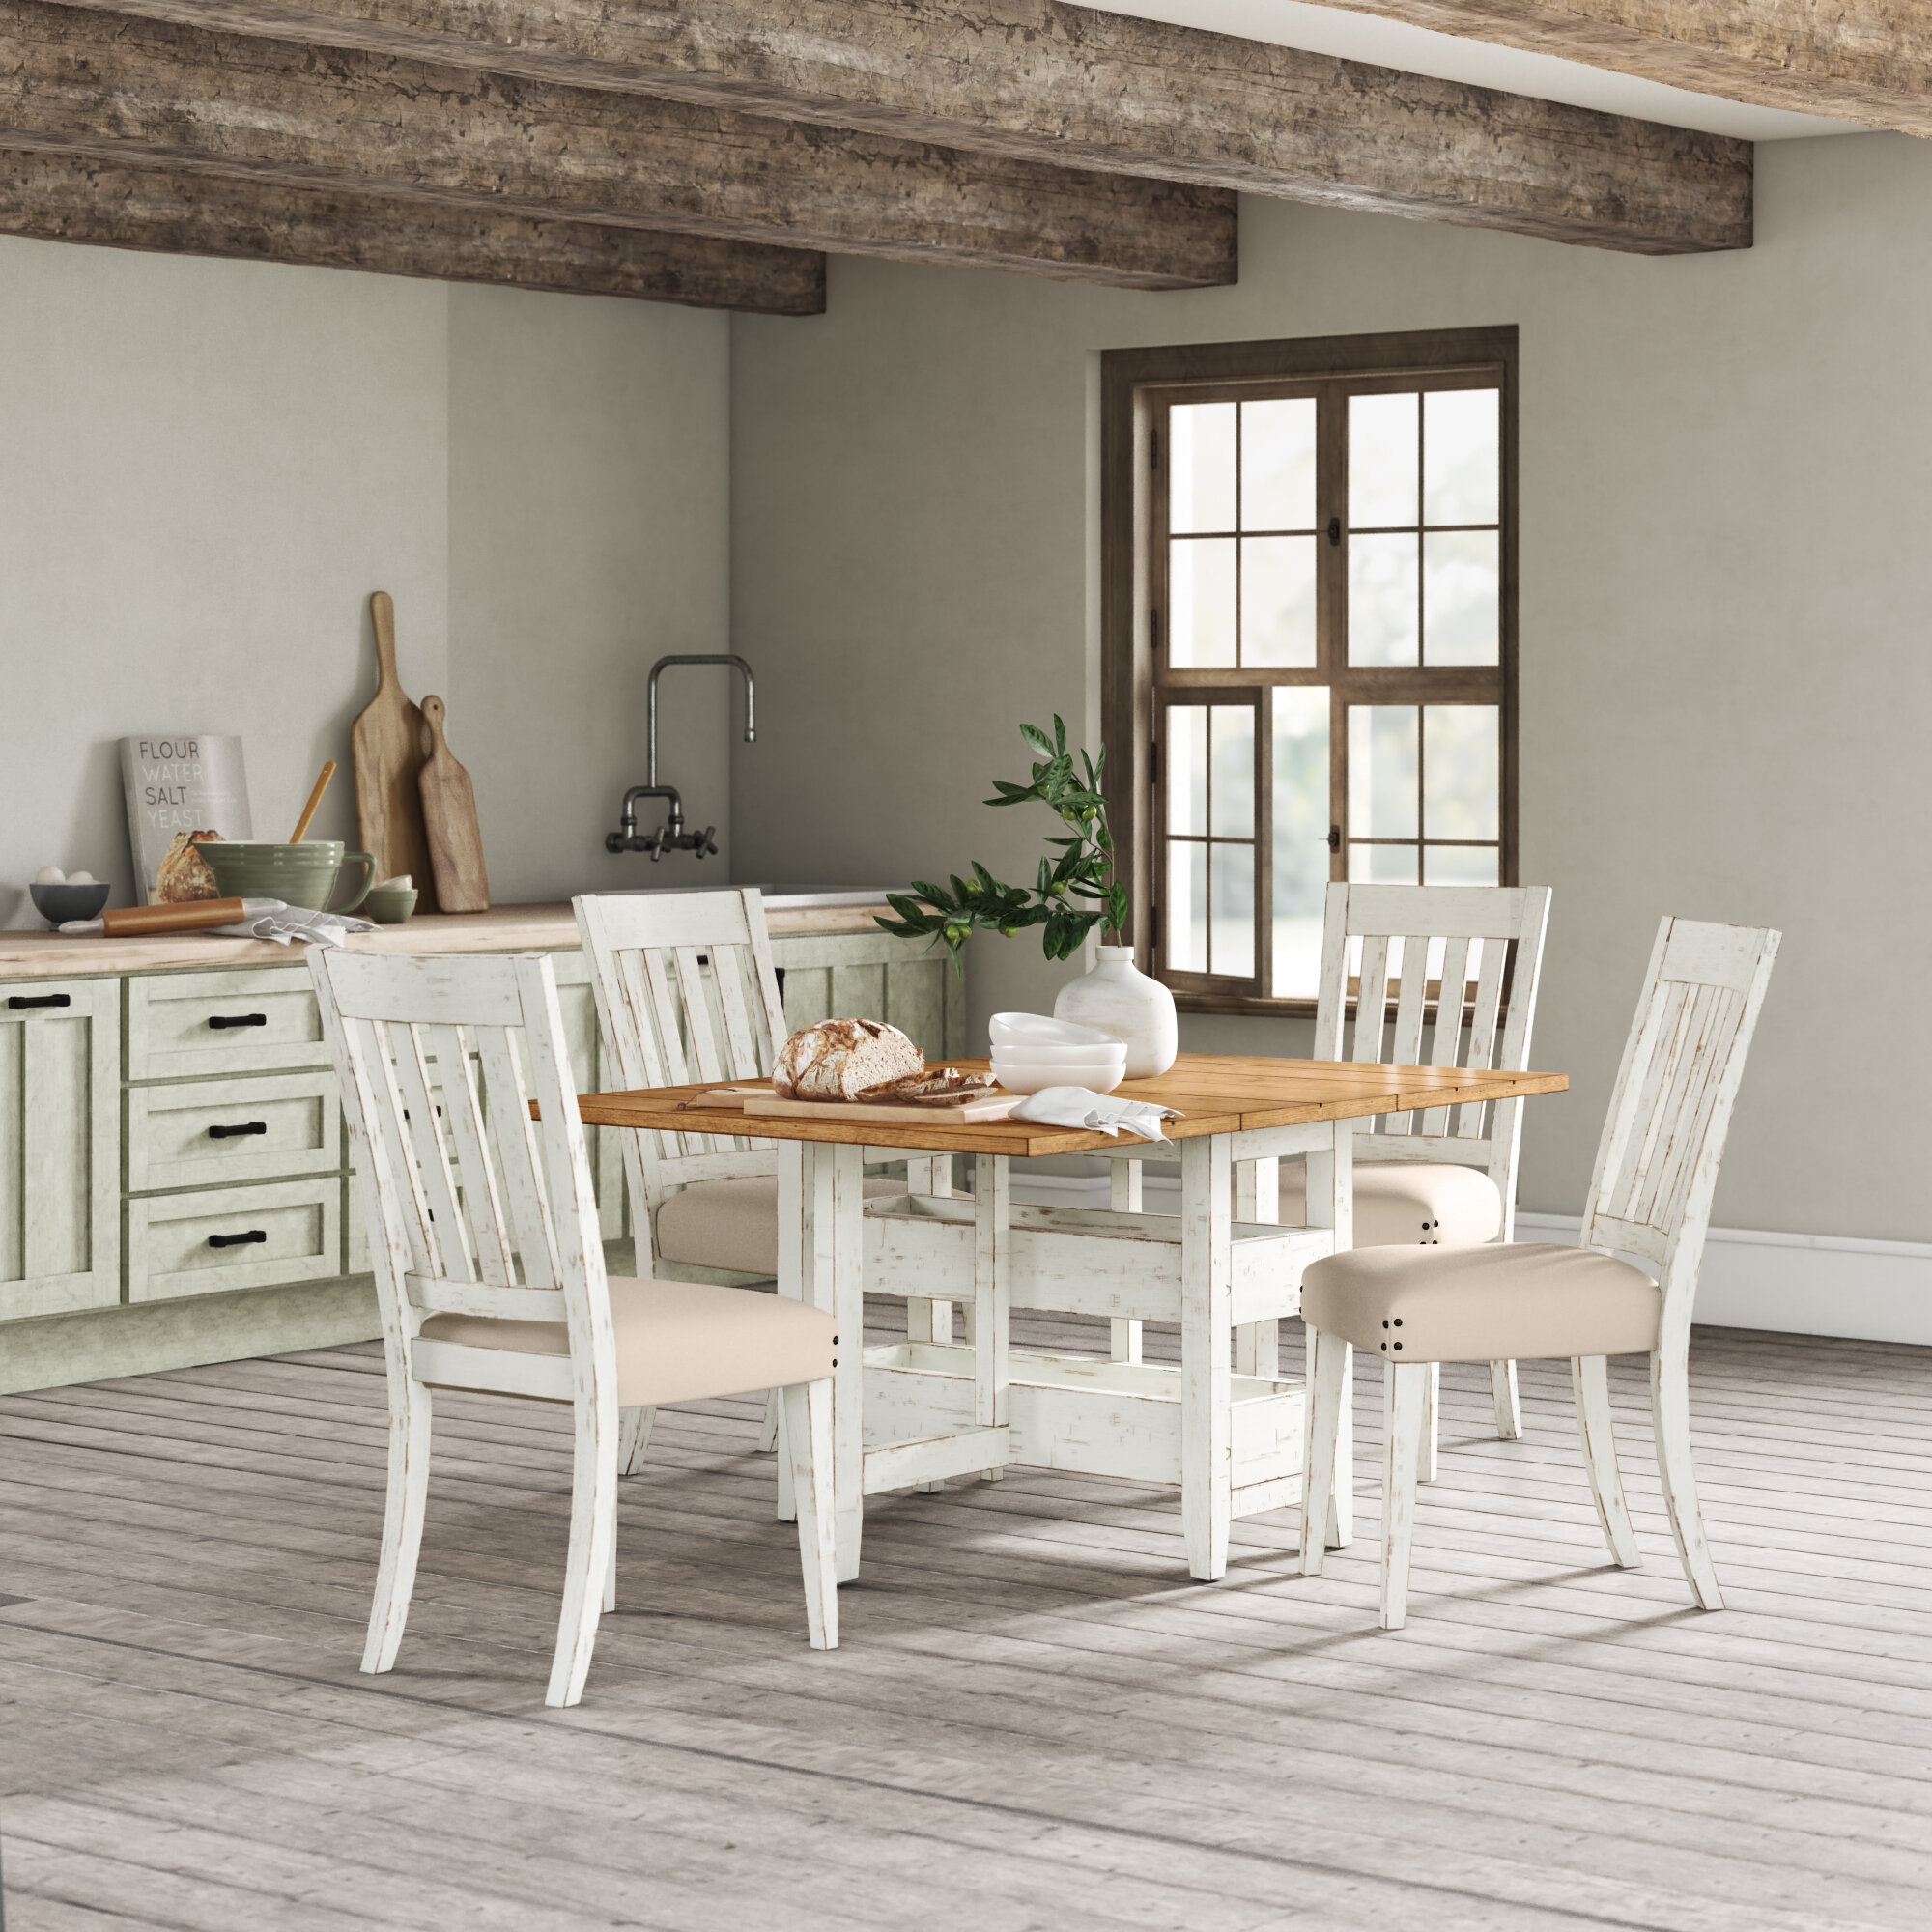 Silver Dining Table And Chairs, Jackie S House 5 Piece Drop Leaf Dining Set Reviews Birch Lane